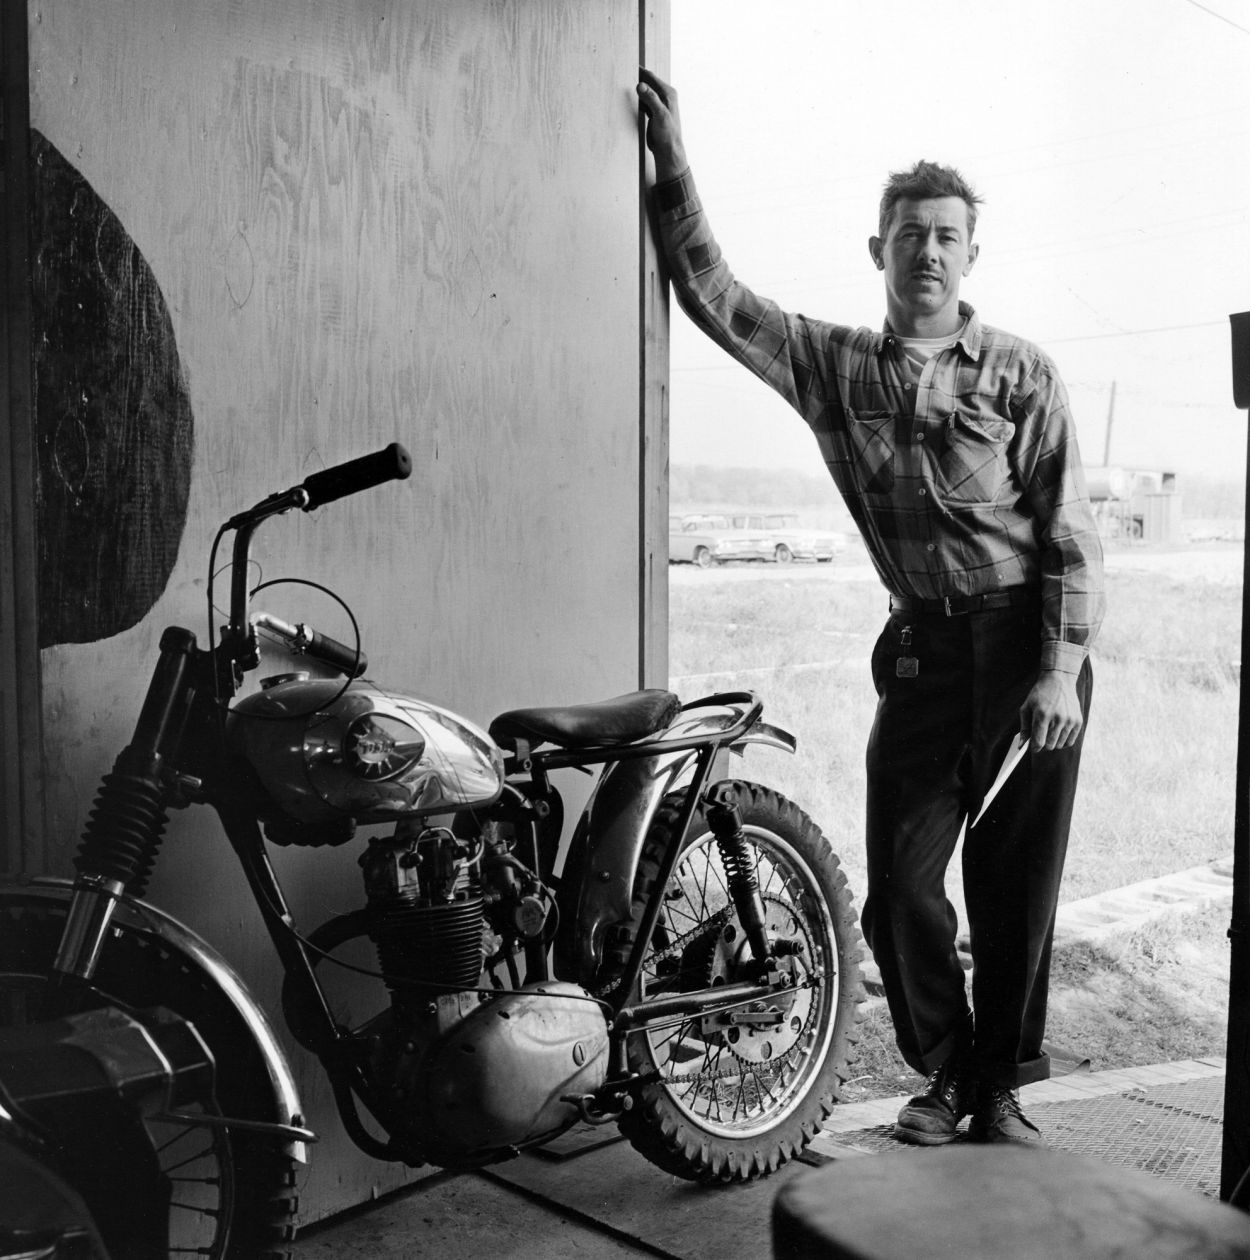 Johnny Goodpaster, Hobart, Indiana (1963-1967) by Danny Lyon